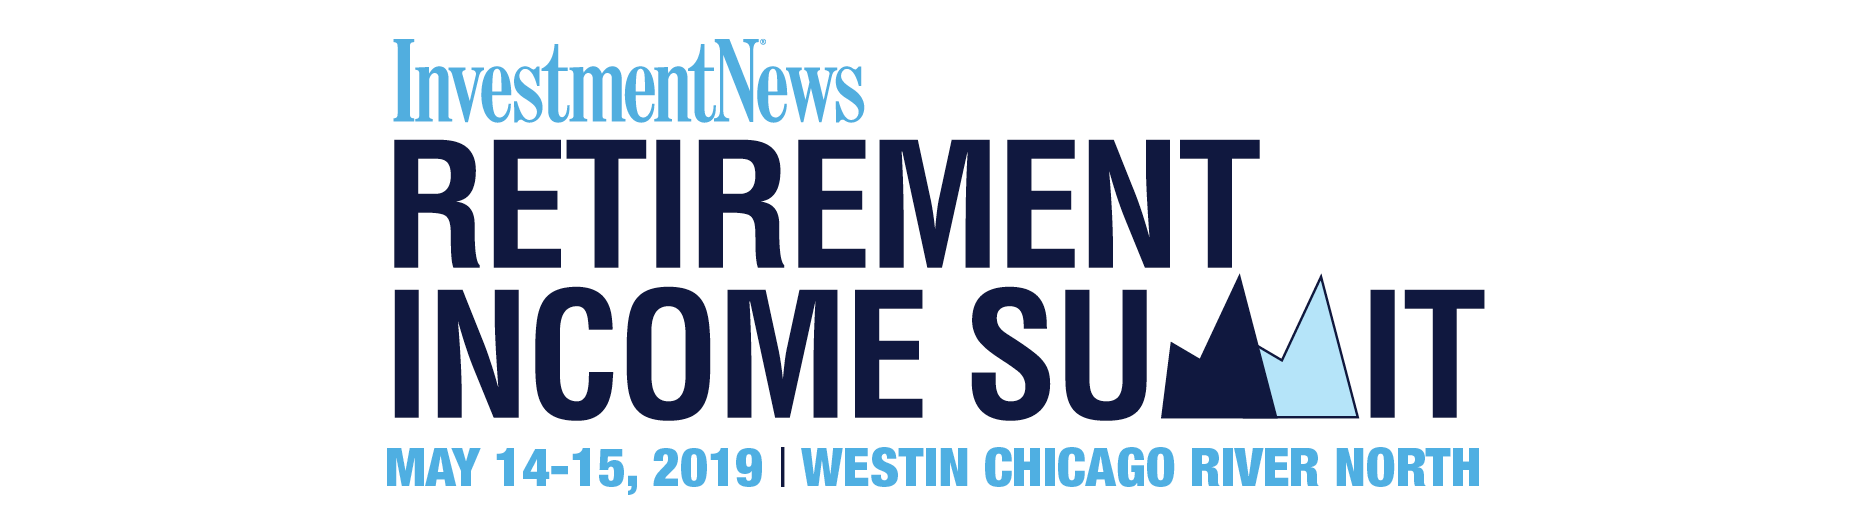 Retirement Income Summit 2019